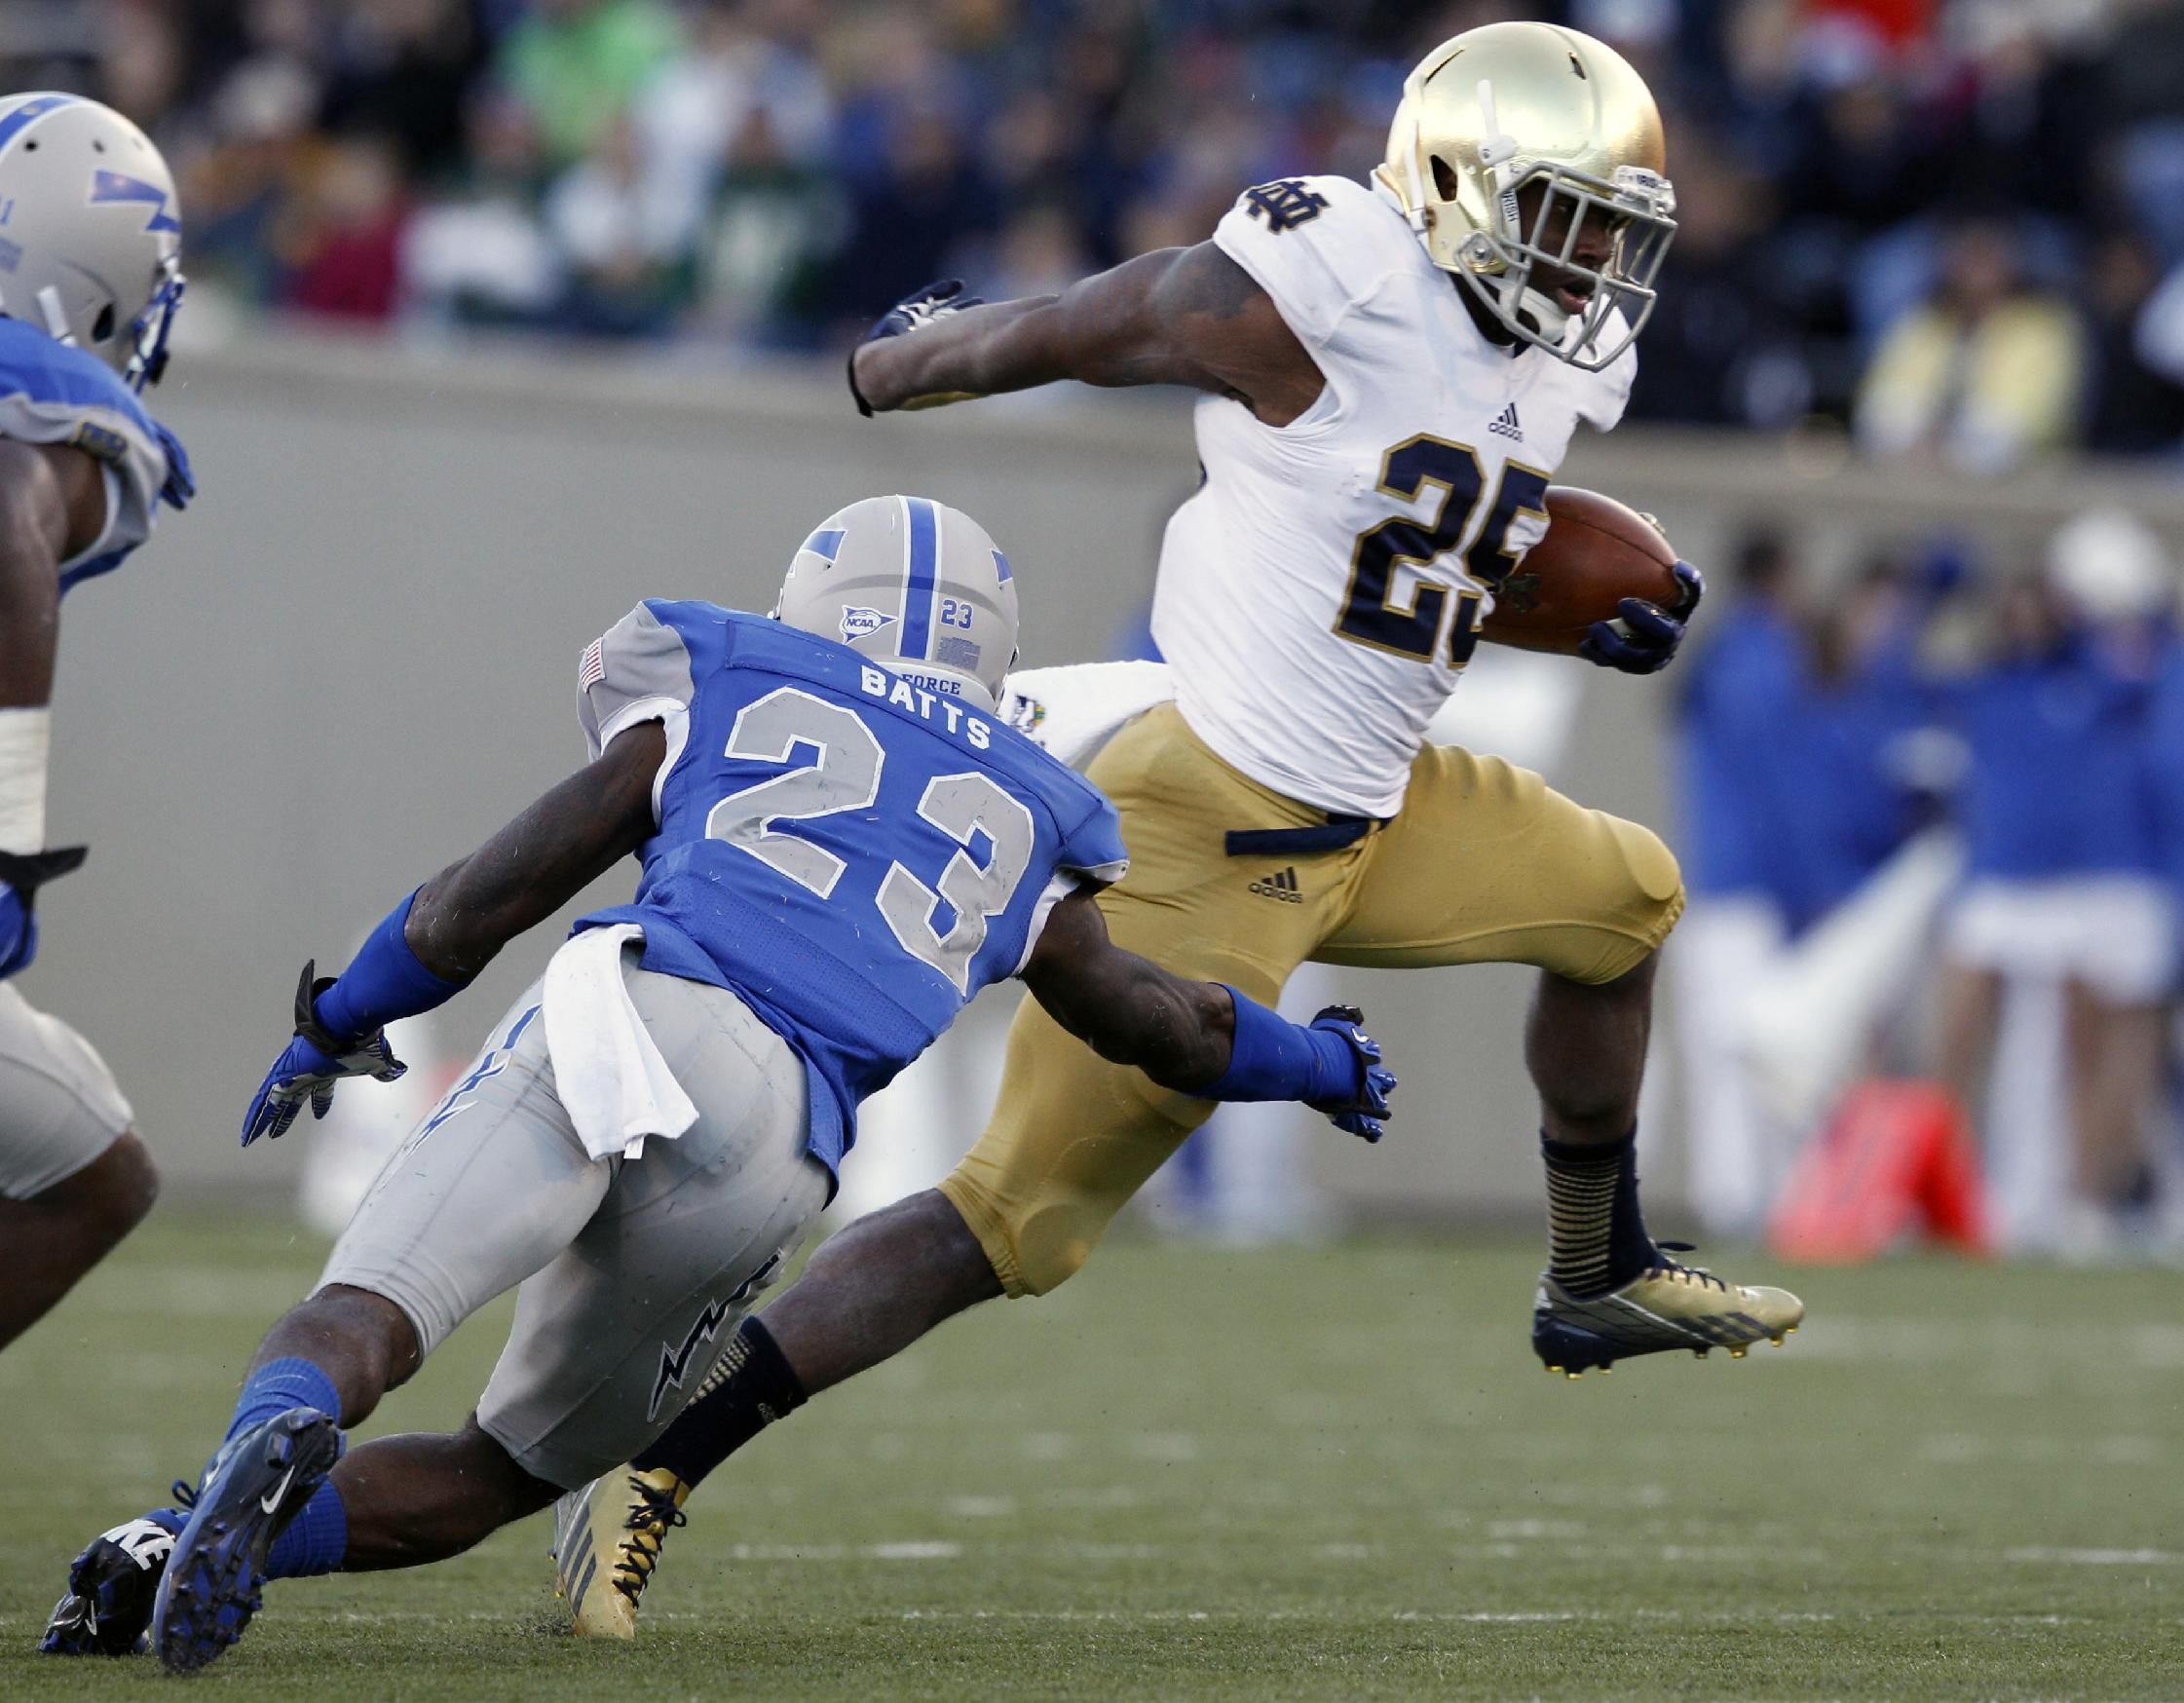 Freshmen making impact for Notre Dame